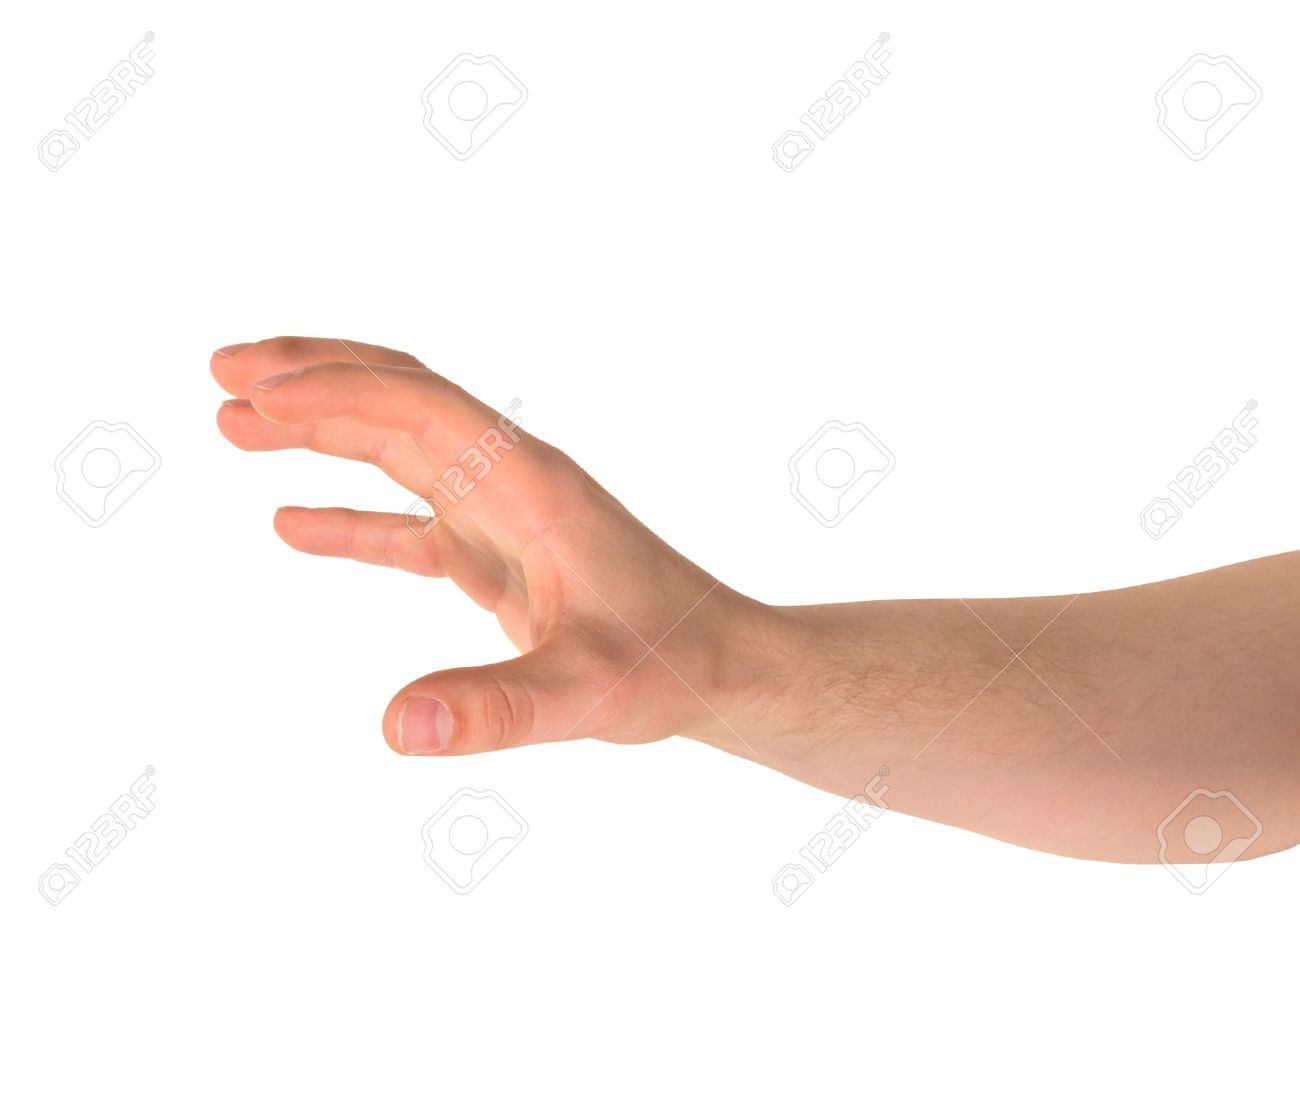 reaching out and grabbing caucasian hand gesture isolated over